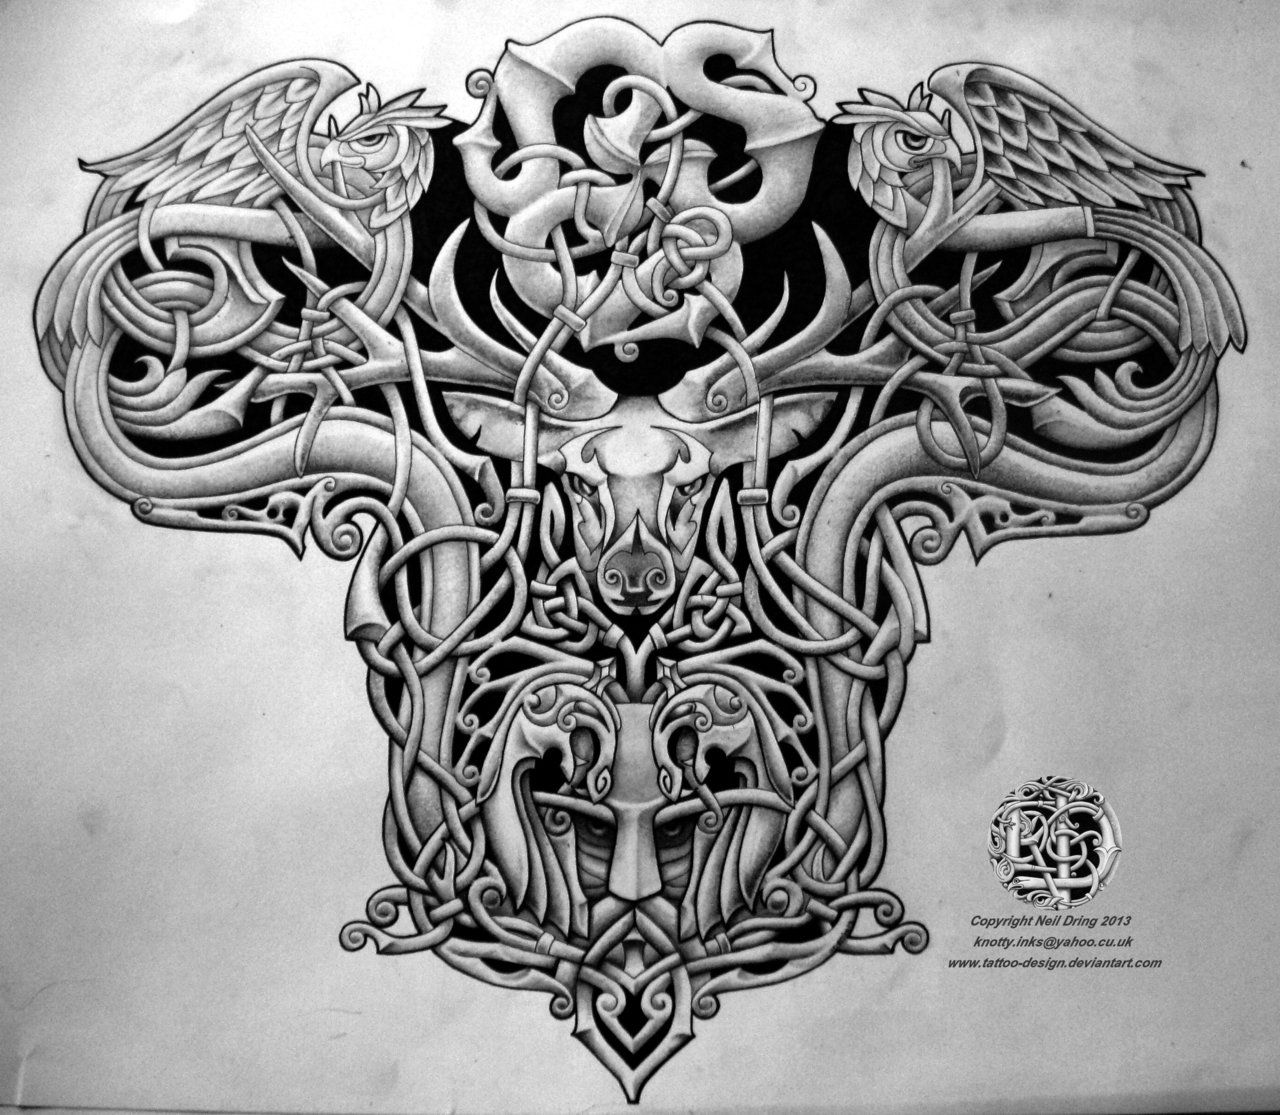 celtic warrior back tattoo design by tattoo design on deviantart for the tattoo pinterest. Black Bedroom Furniture Sets. Home Design Ideas